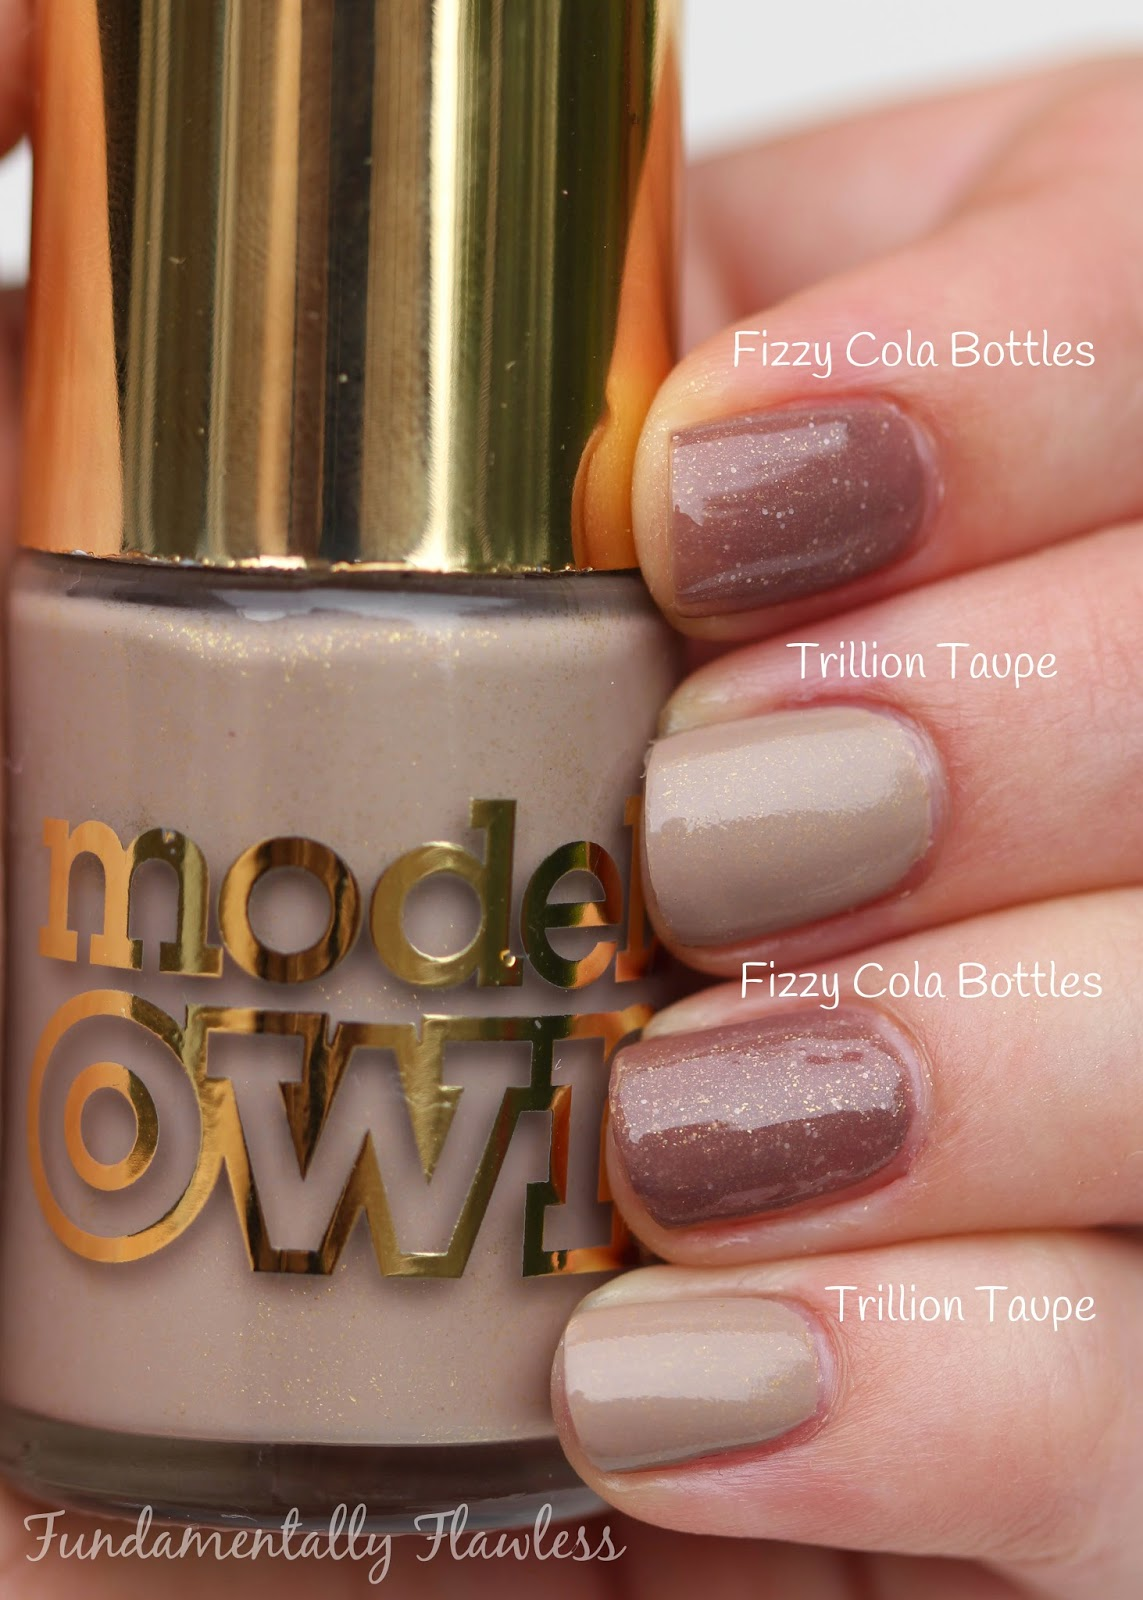 Models Own Fizzy Cola Bottles vs Trillion Taupe comparison